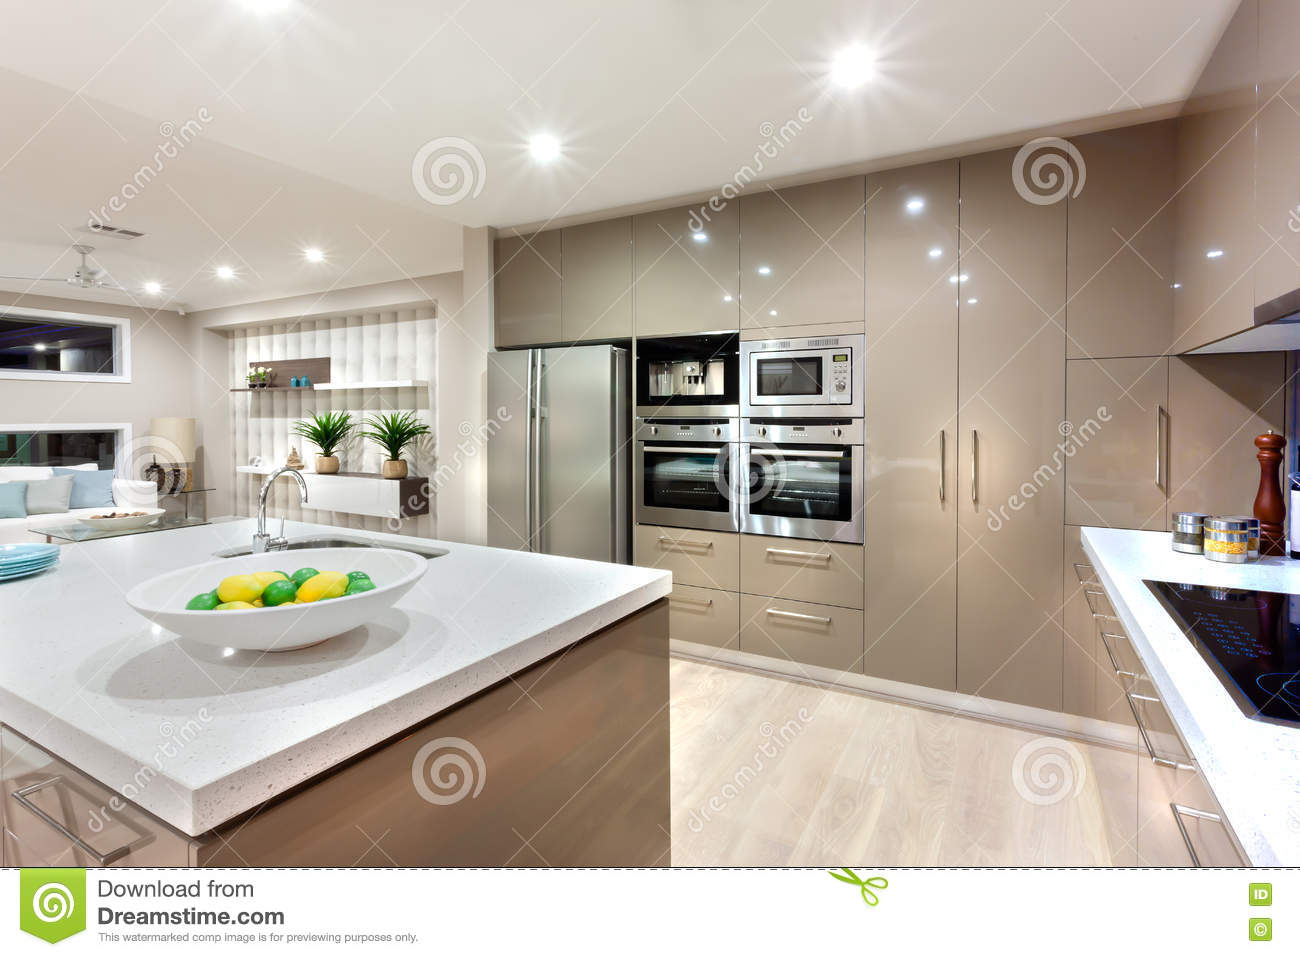 Modern Kitchen Area Illuminated With Lights At Night Stock Image Image Of Area Decoration 76705225